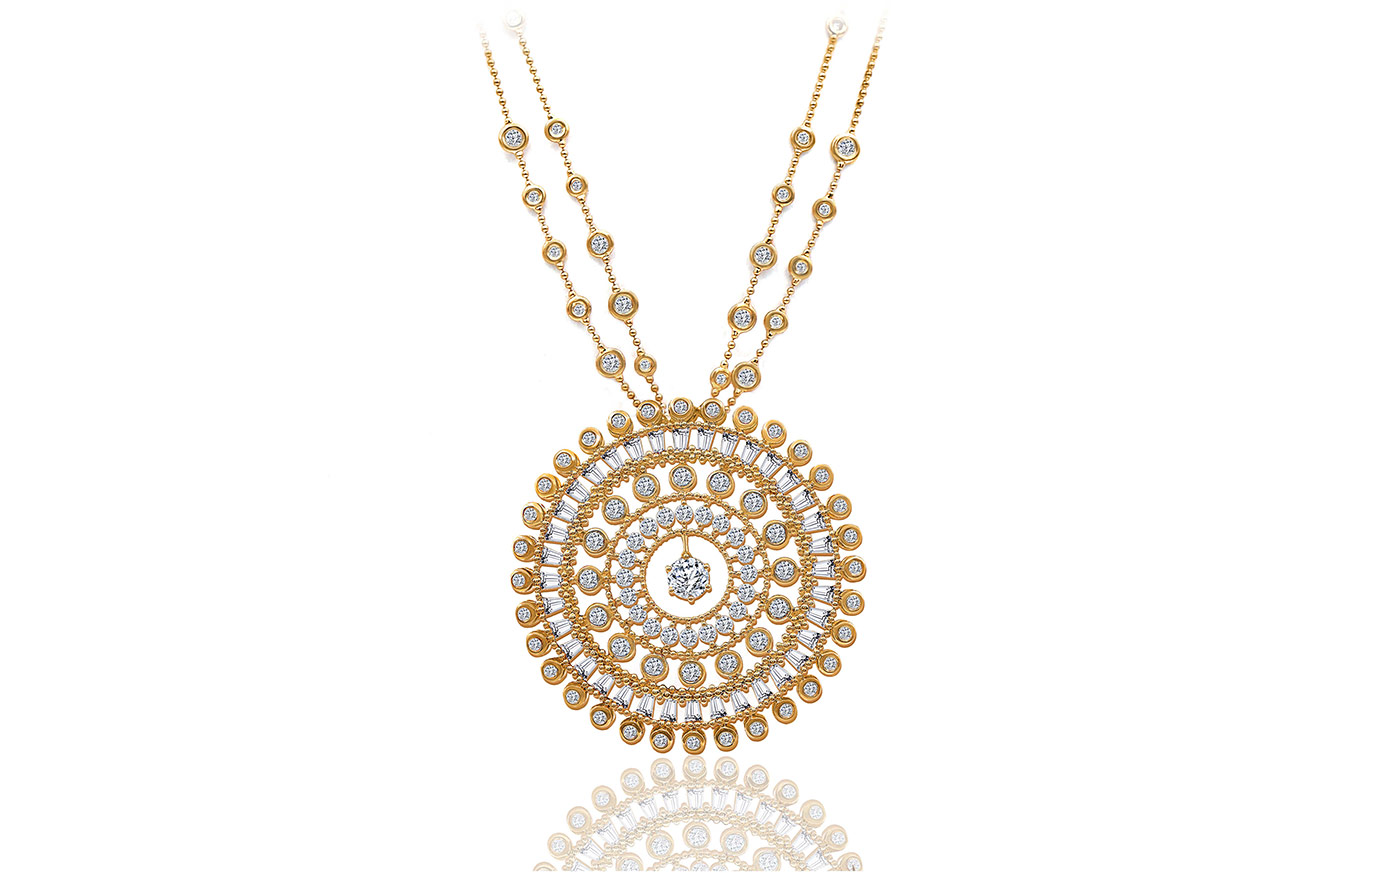 Harakh Harakh 'Sunlight' necklace with diamonds in yellow gold